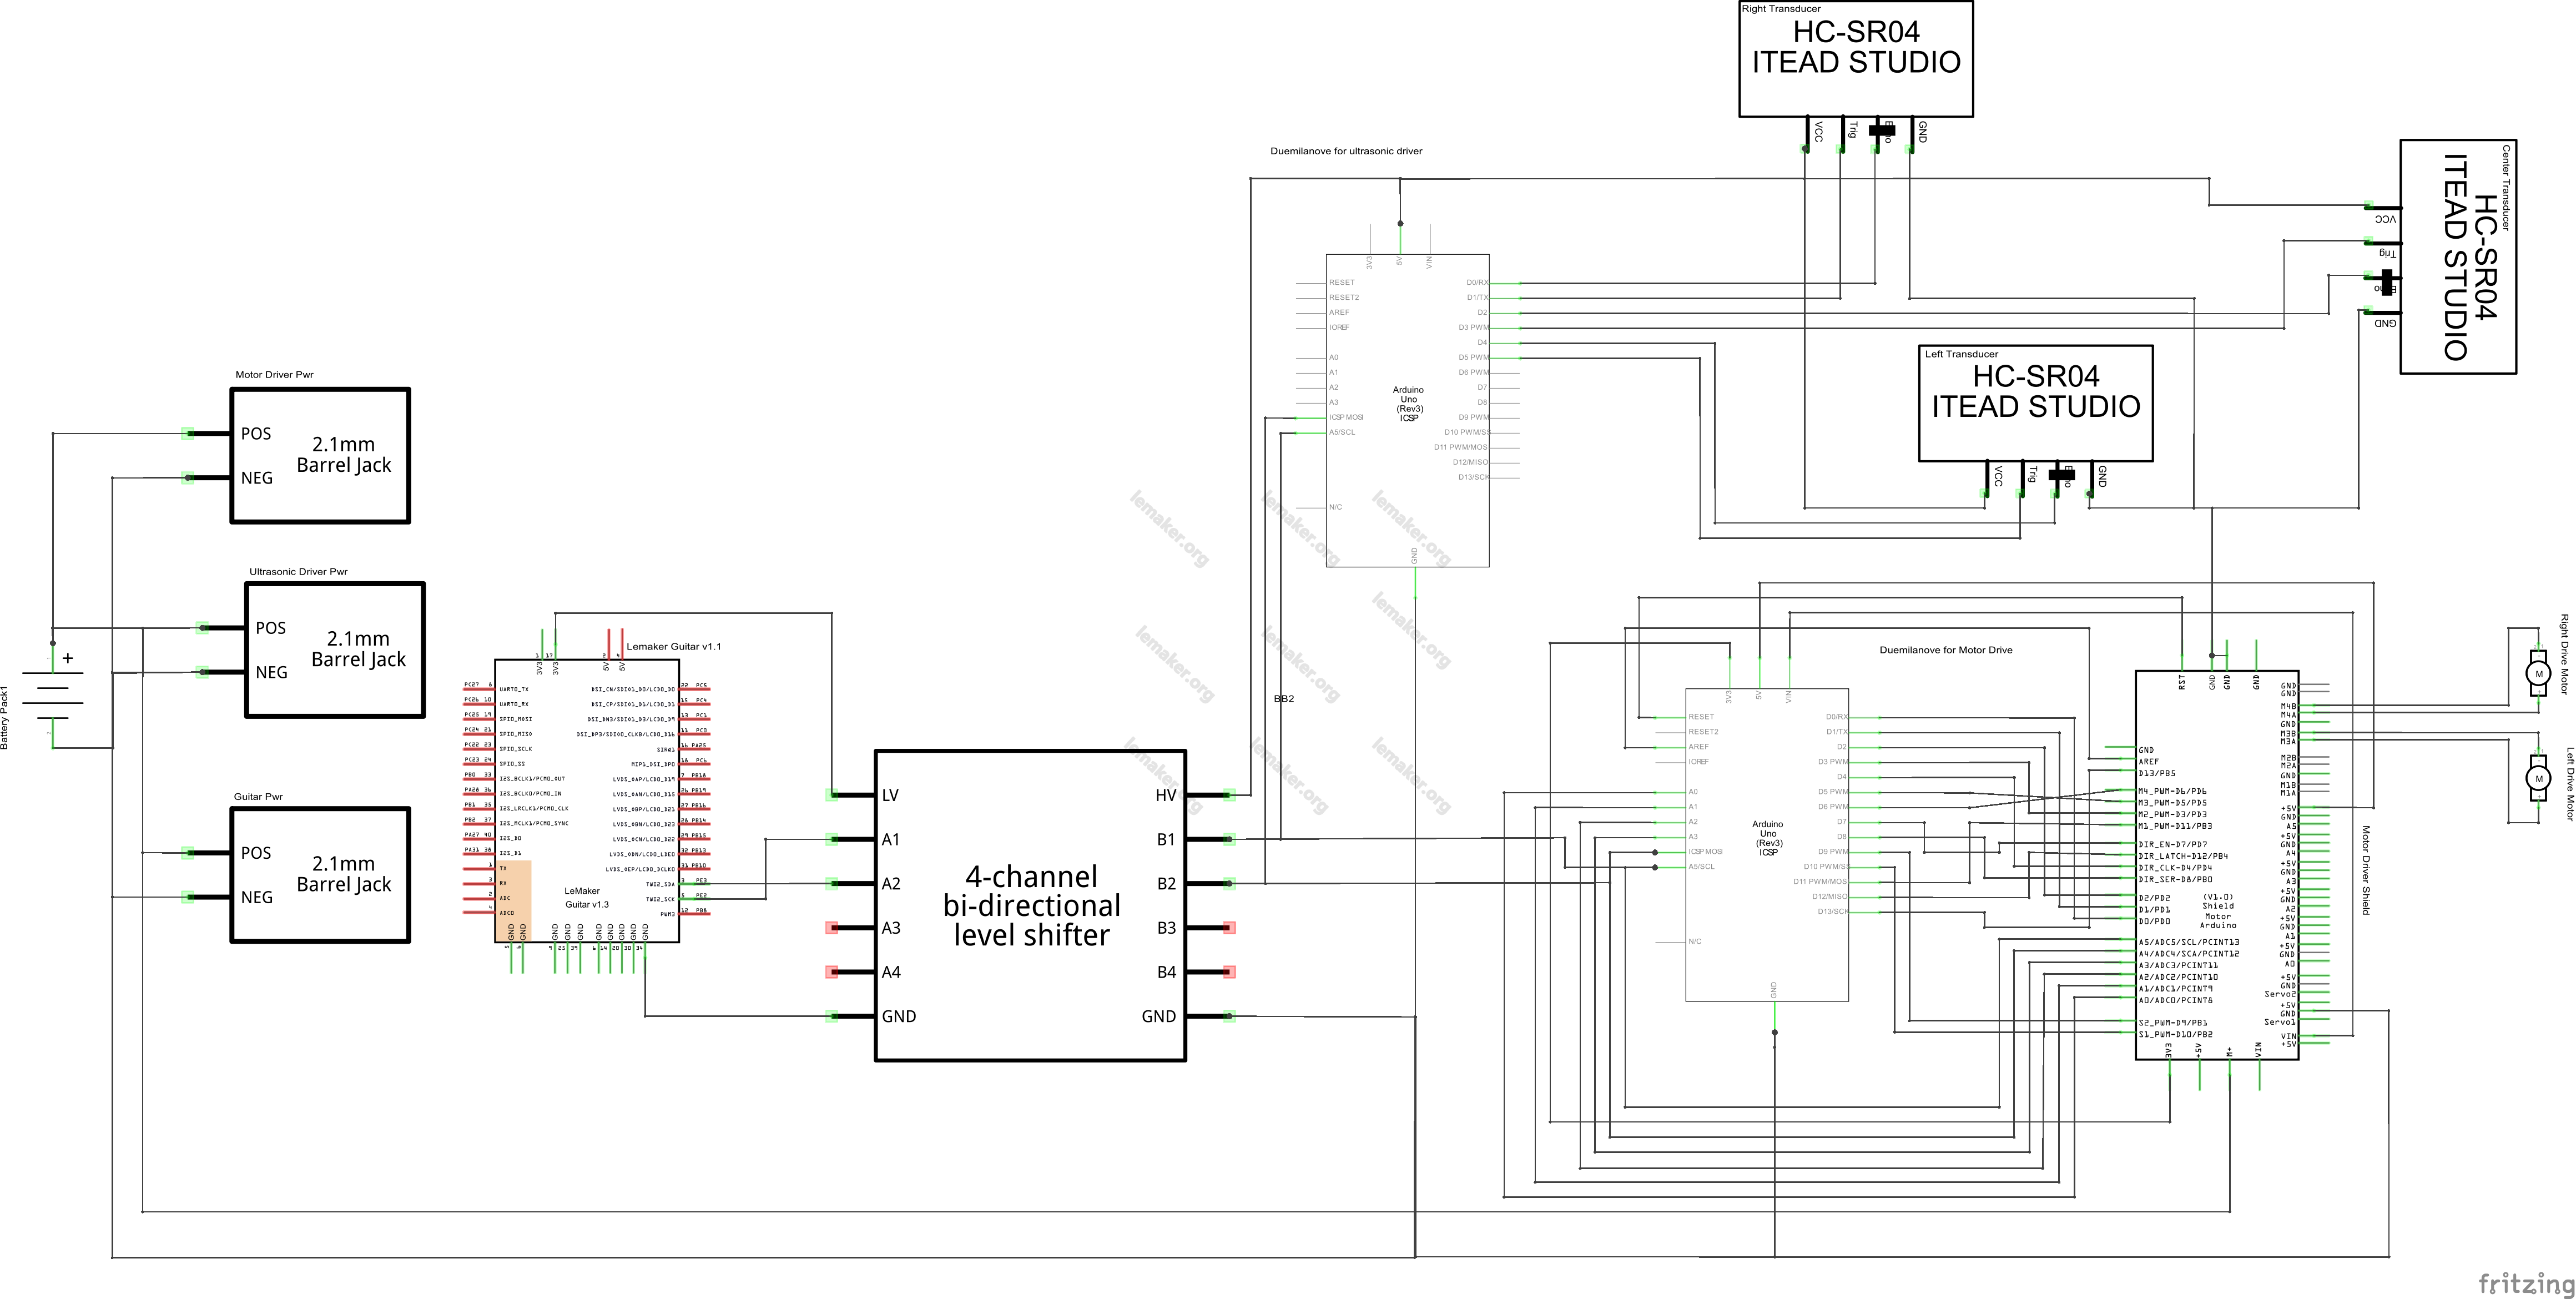 fritzing schematic.